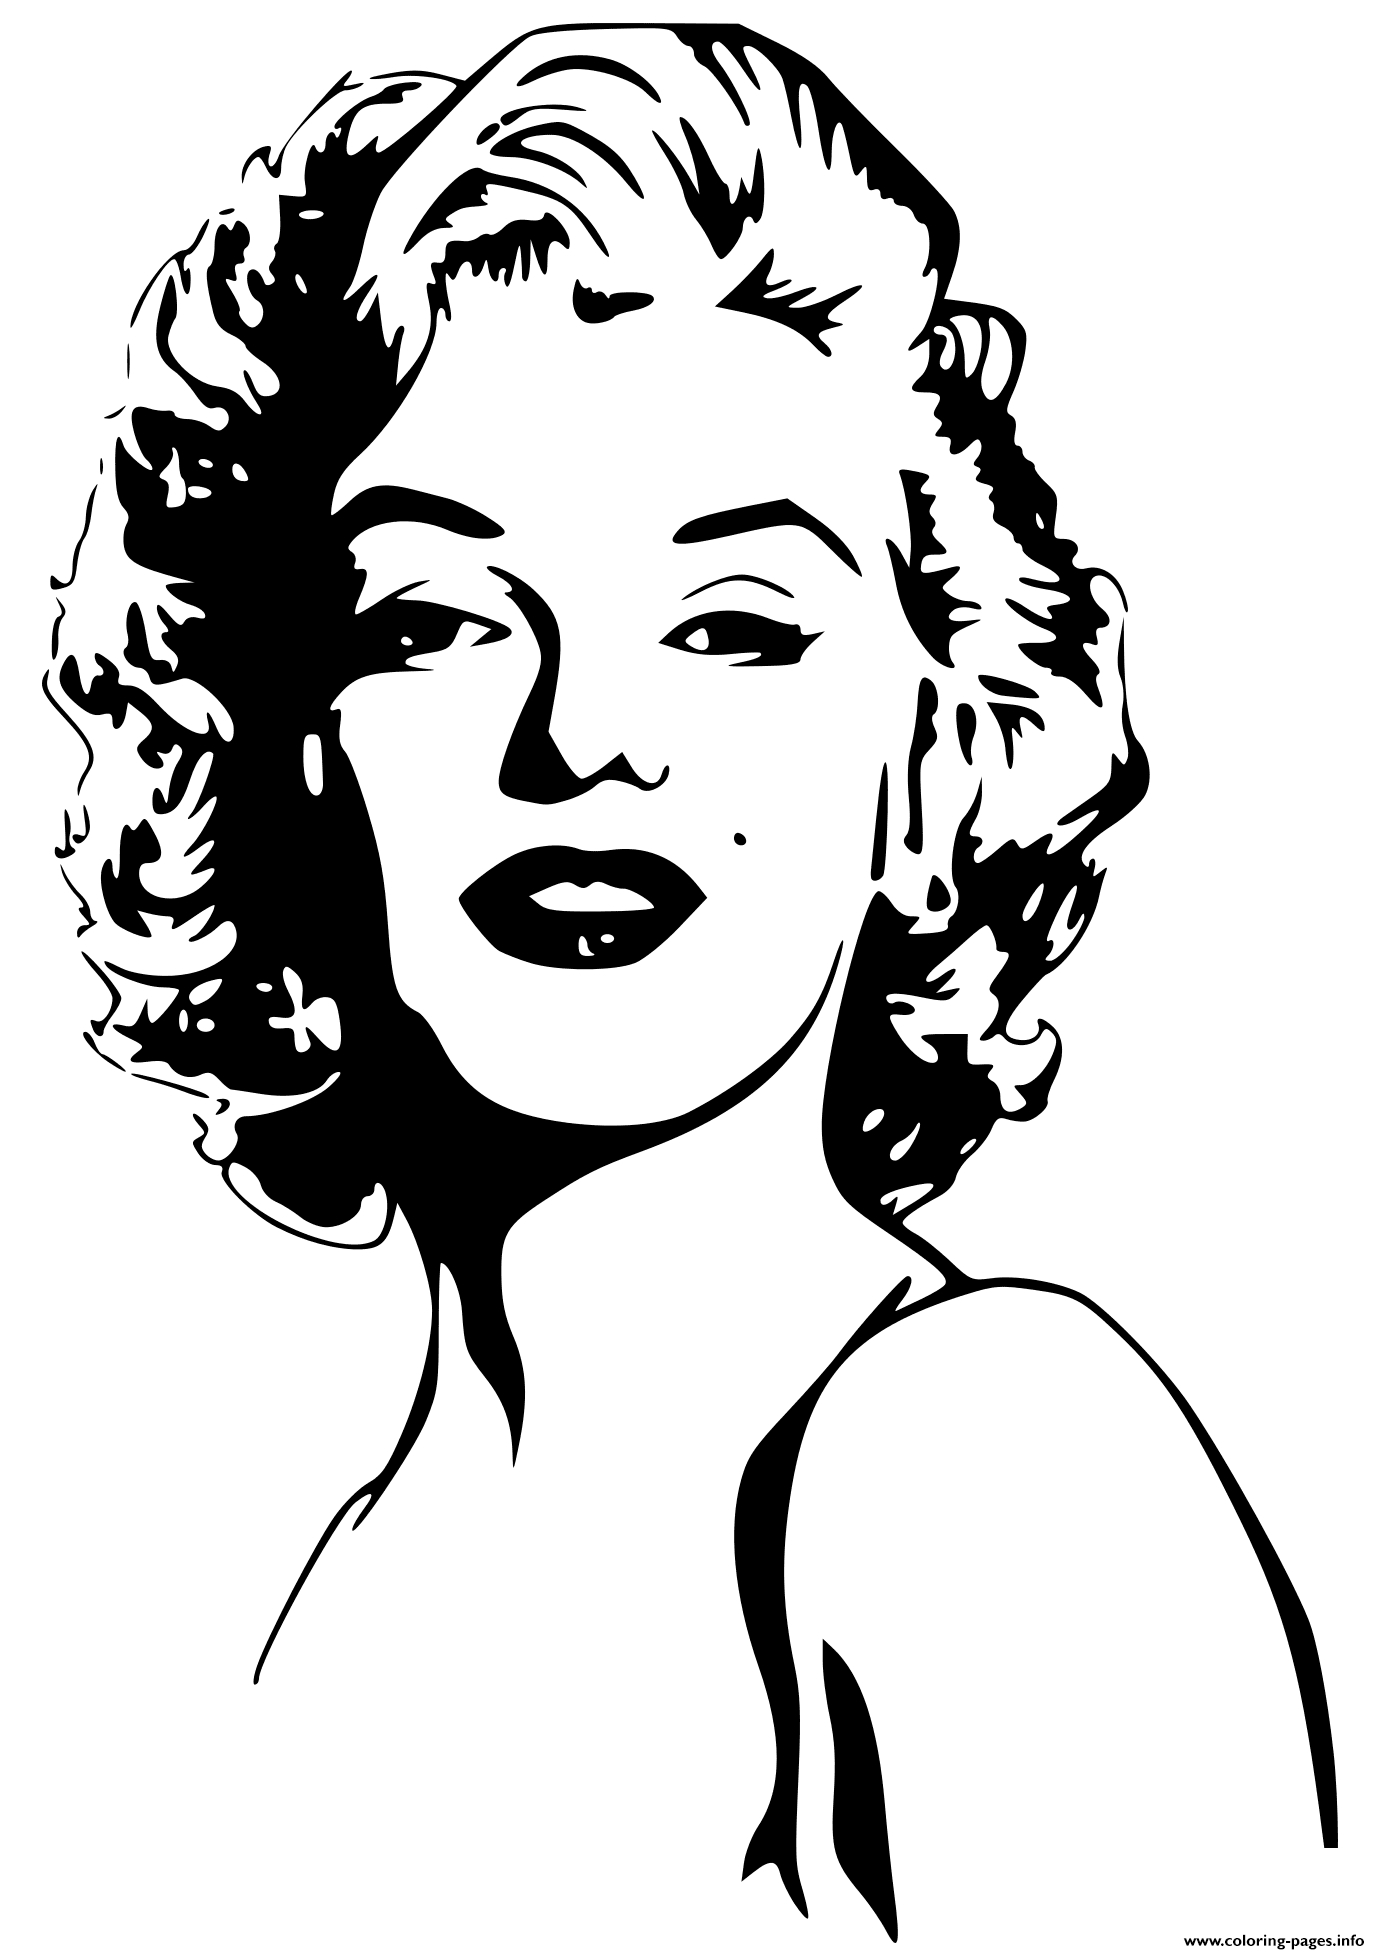 marilyn monroe celebrity coloring pages - Celebrity Coloring Pages